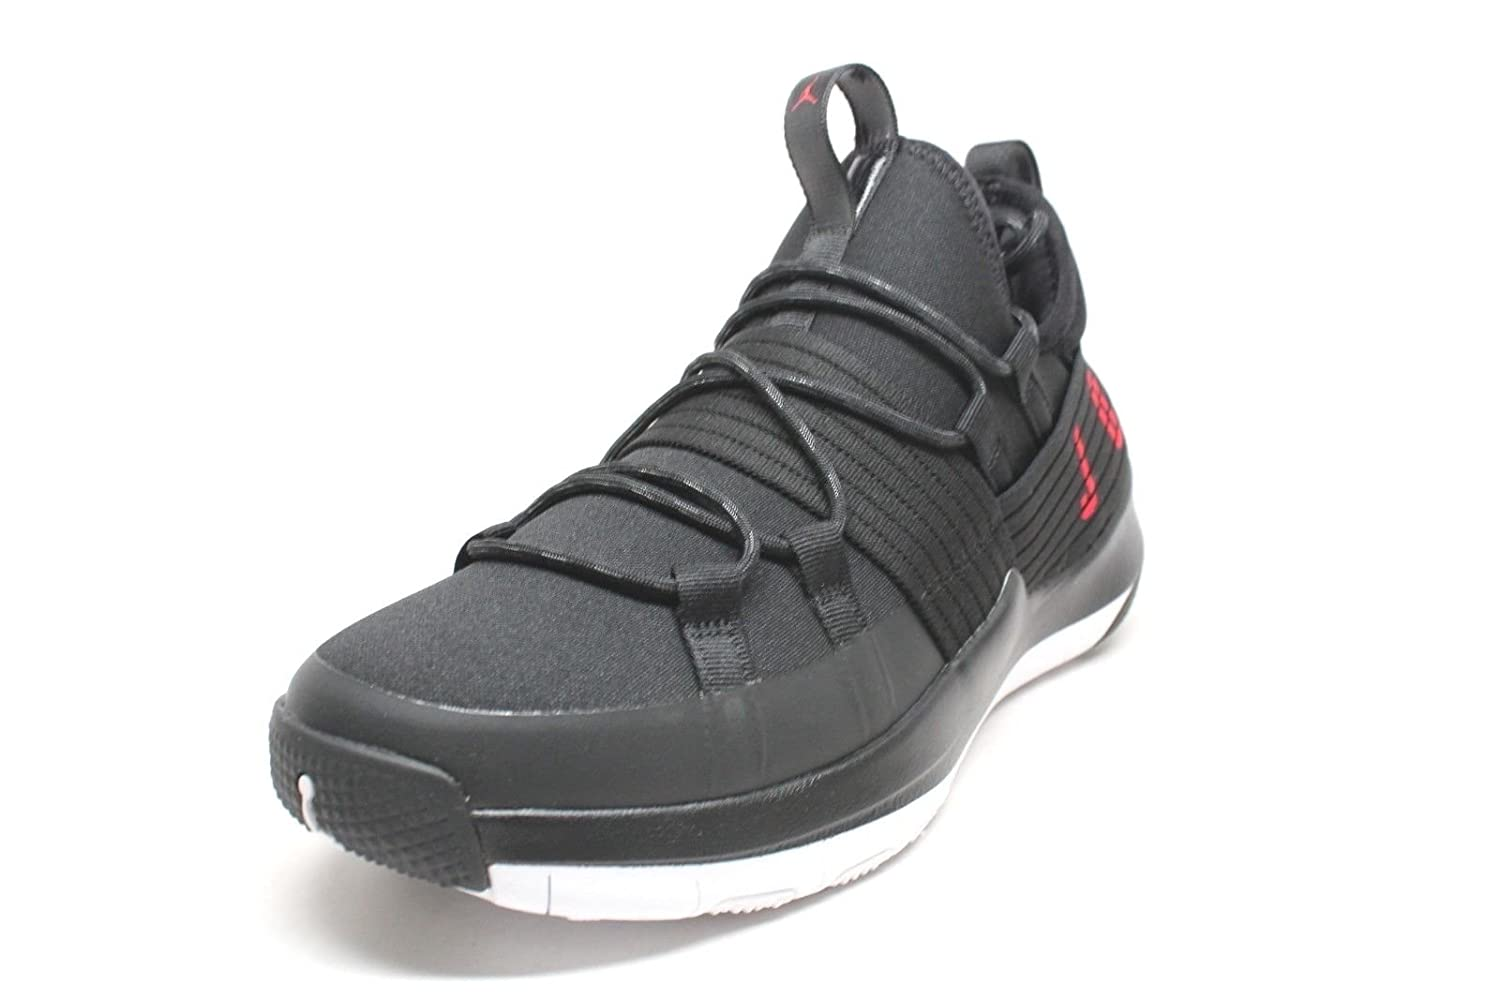 Men's Jordan Trainer Pro Black/Gym Red-White B078YFVM68 13 D(M) US